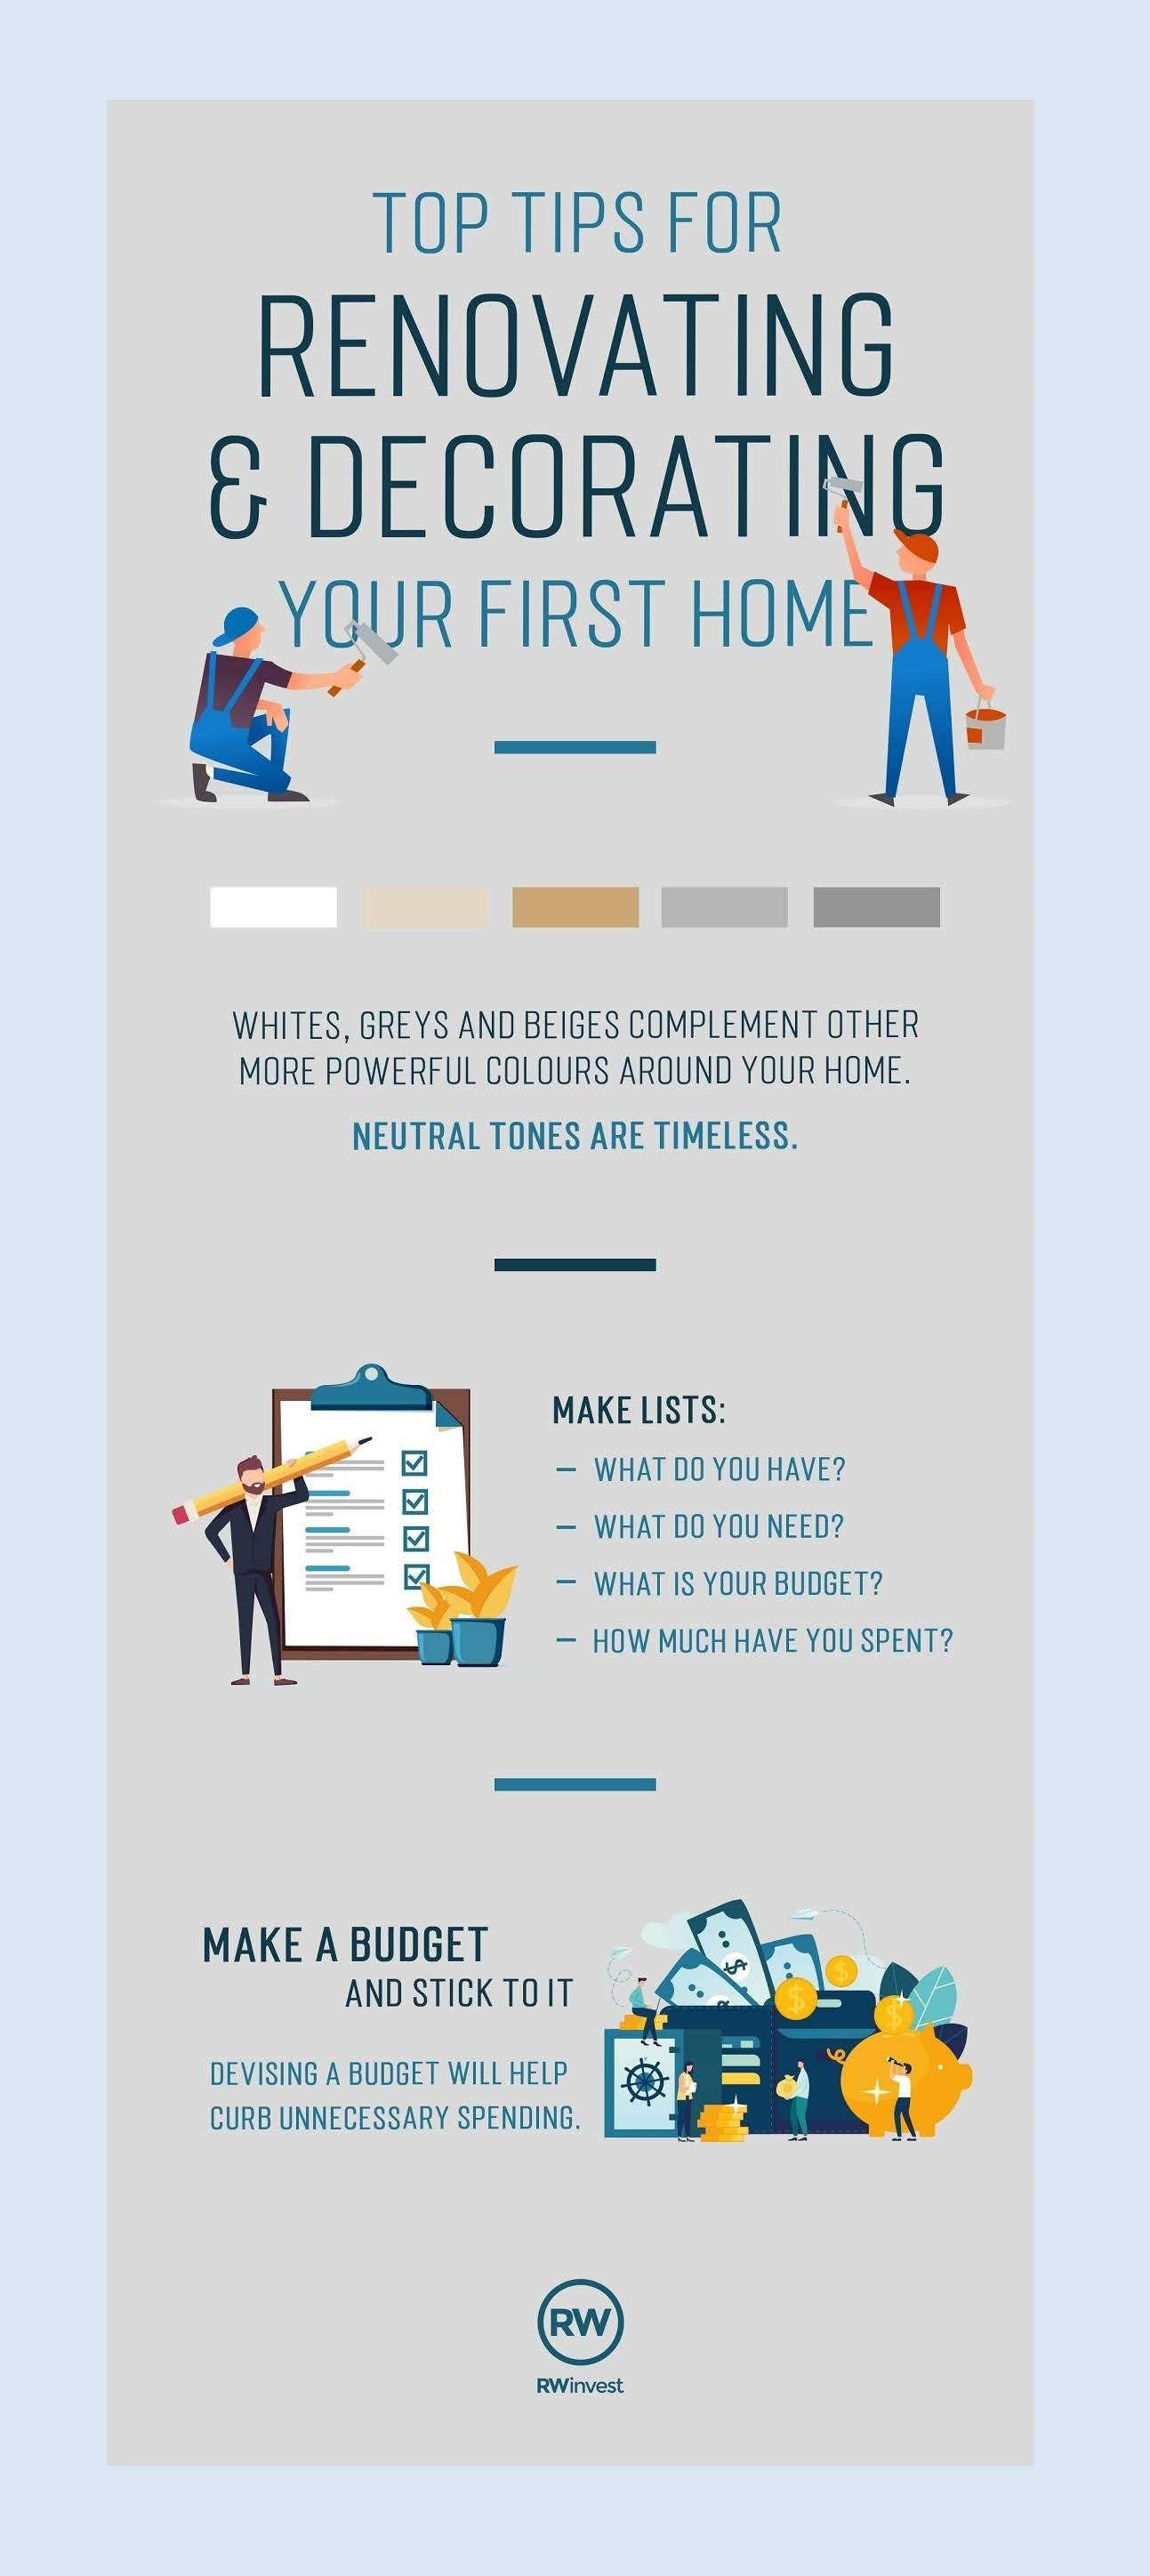 tips-for-renovating-decorating-your-first-home-infographic